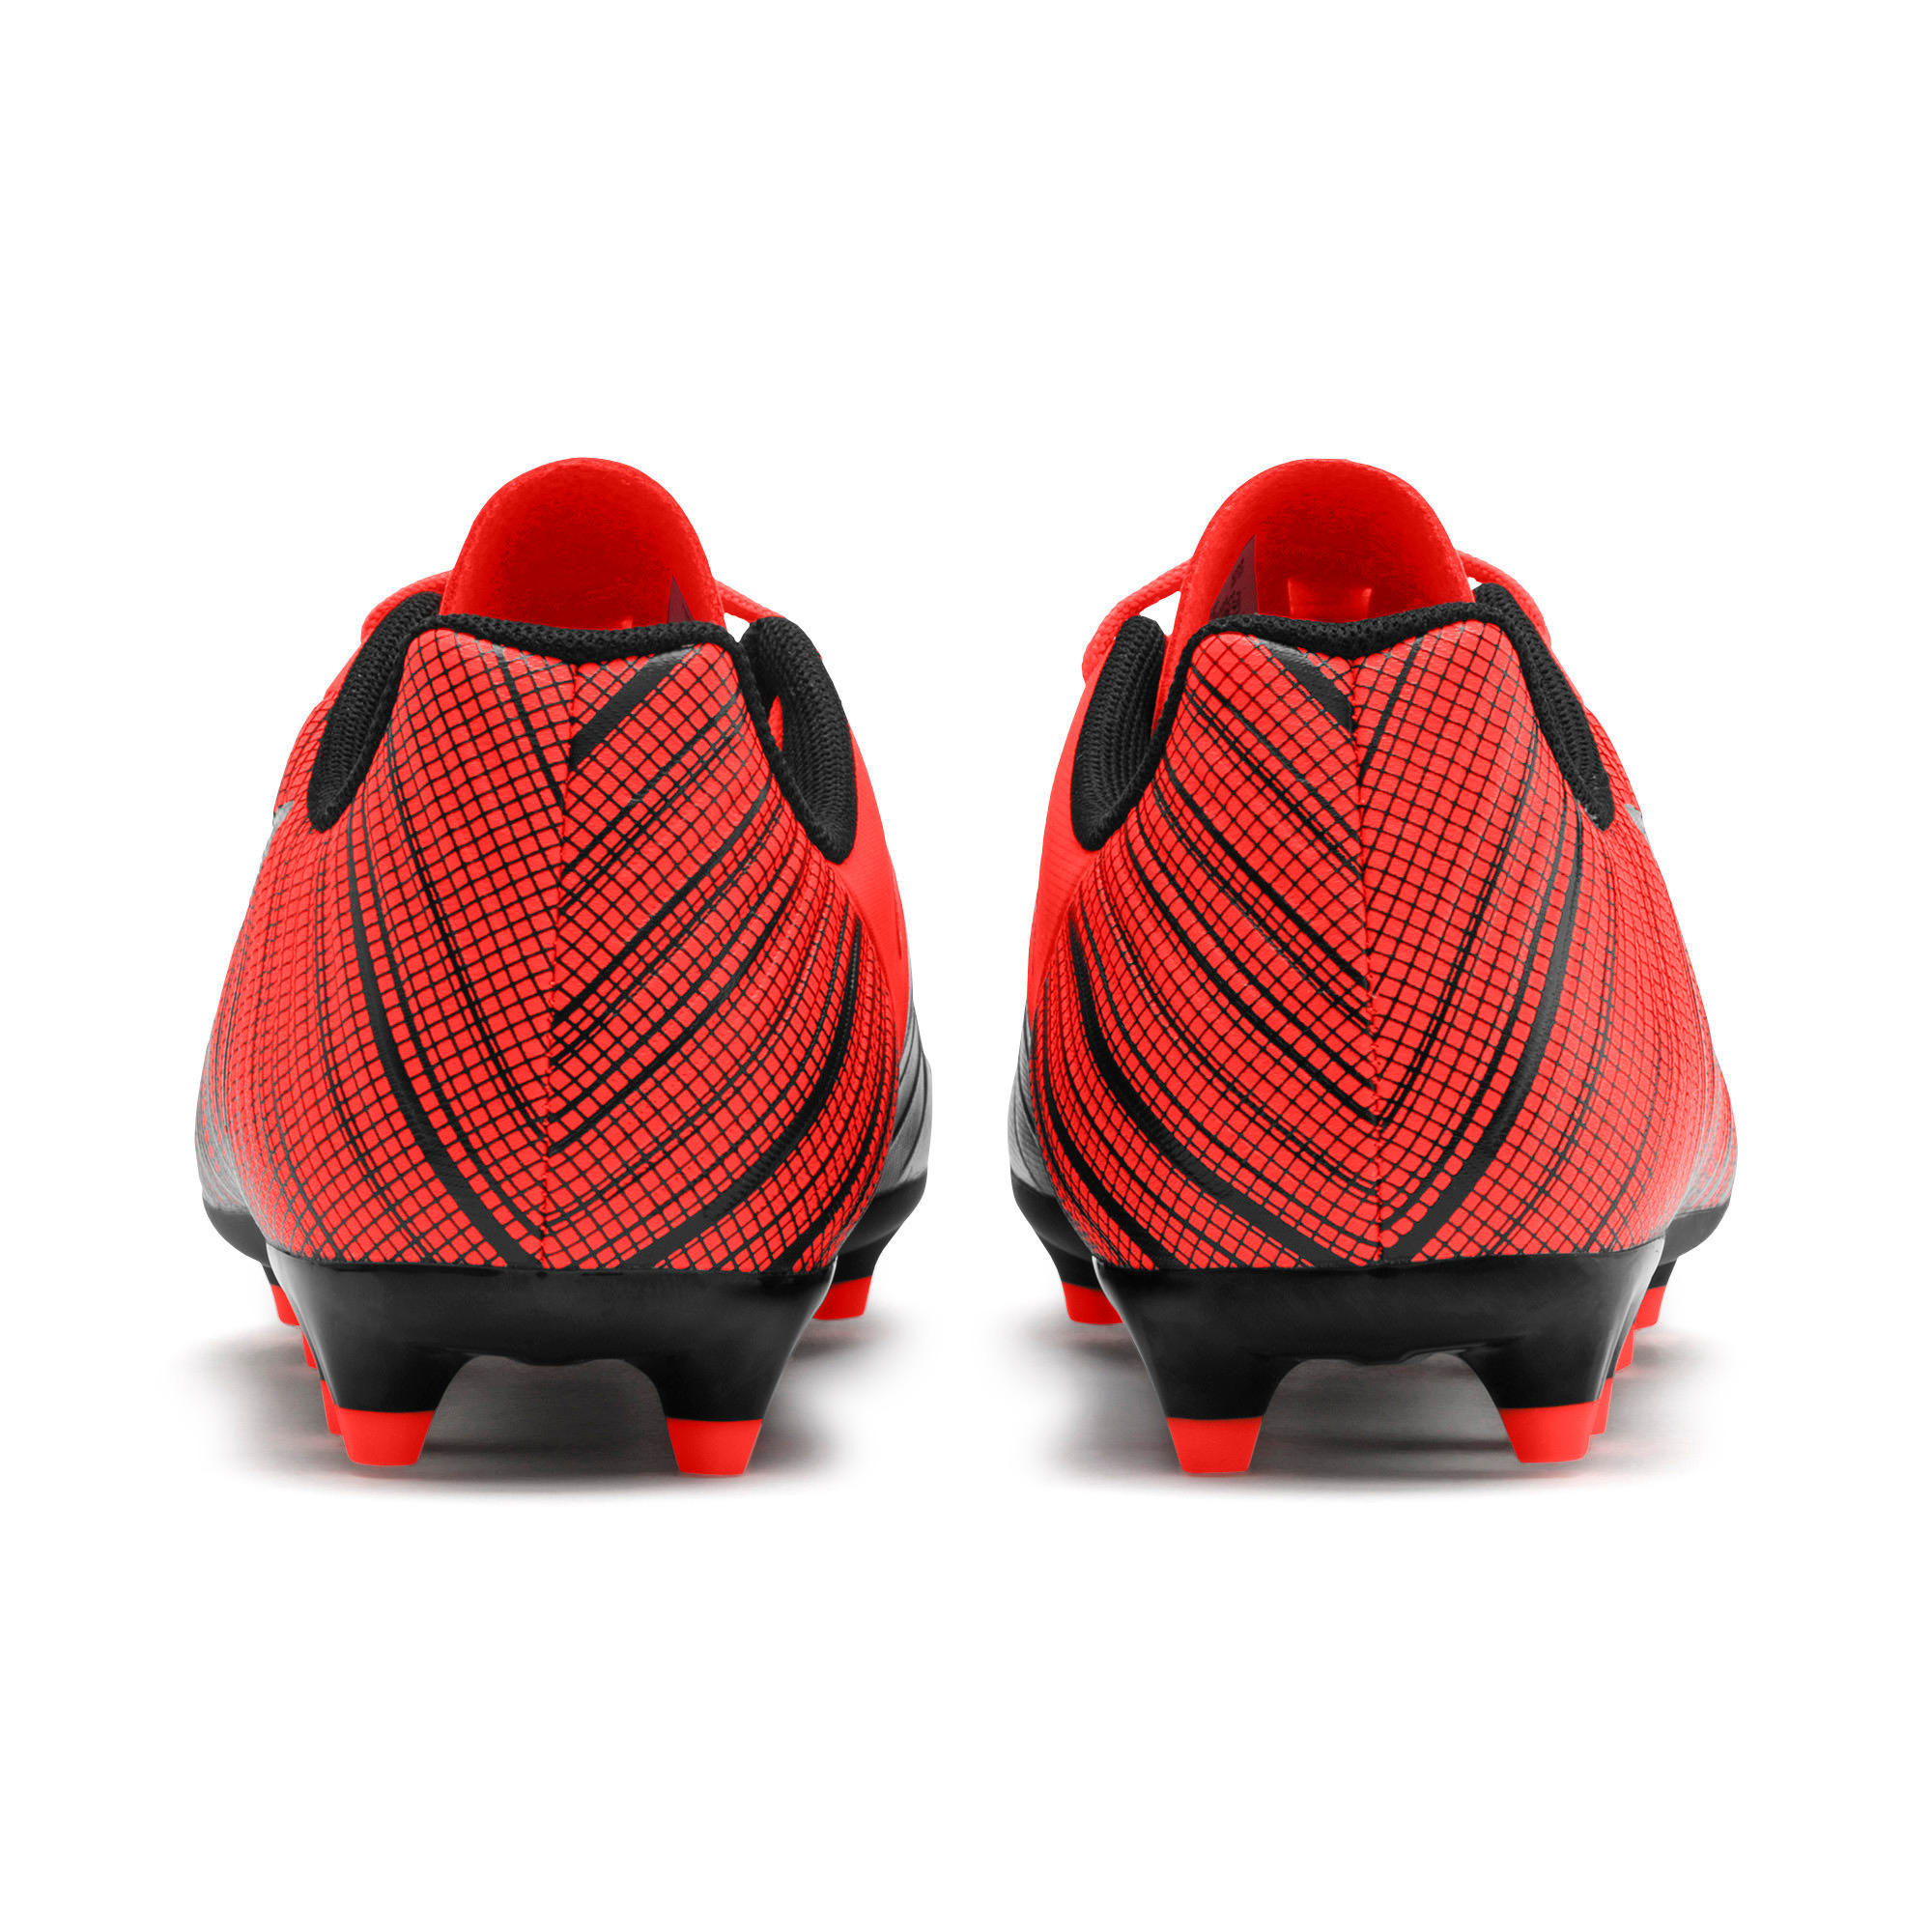 Thumbnail 3 of PUMA ONE 5.4 IT voetbalschoenen voor jongeren, Black-Nrgy Red-Aged Silver, medium